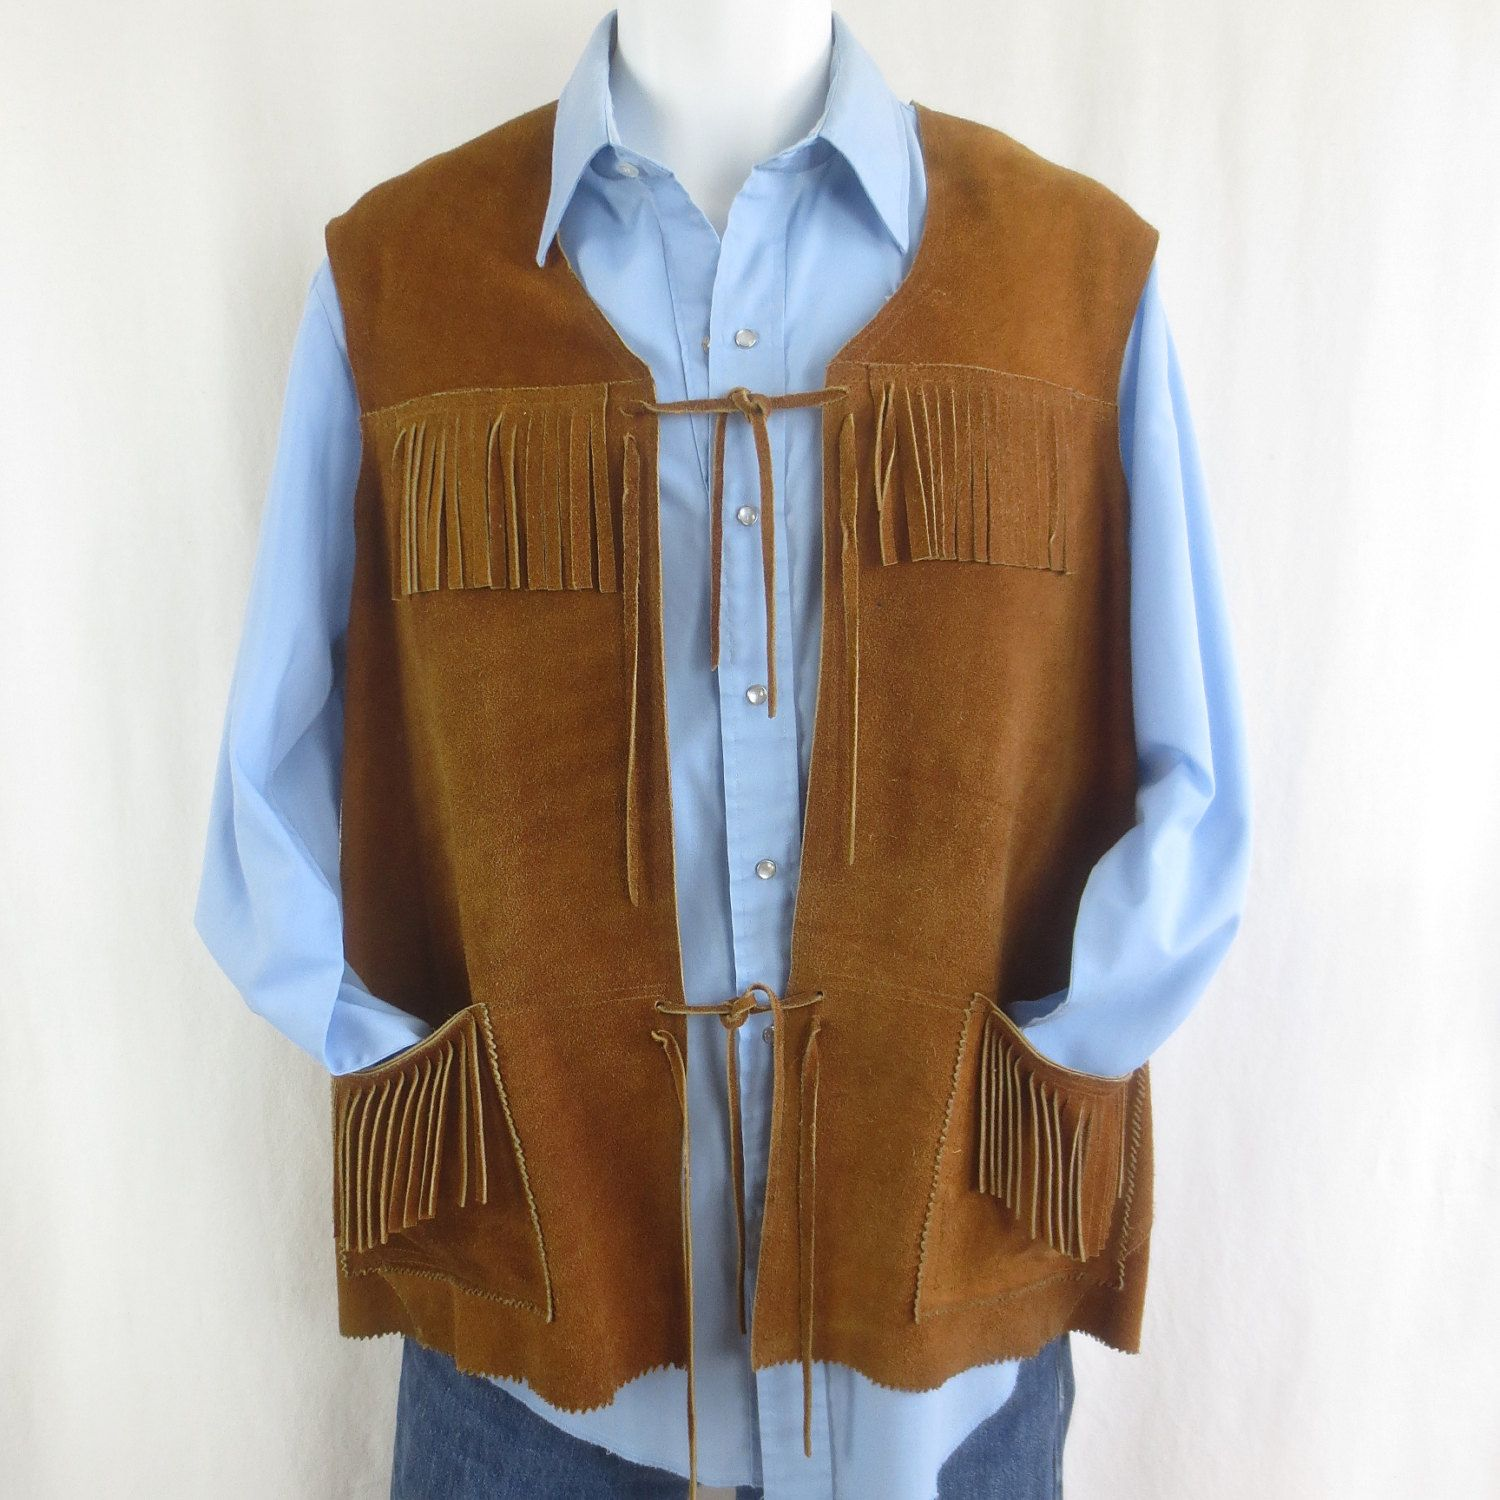 Vintage !970u0027s Russet Suede Fringed Leather Vest - Reenactment Costume Western Cowboy Sz L by delilahsdeluxe on Etsy & Vintage !970u0027s Russet Suede Fringed Leather Vest - Reenactment ...